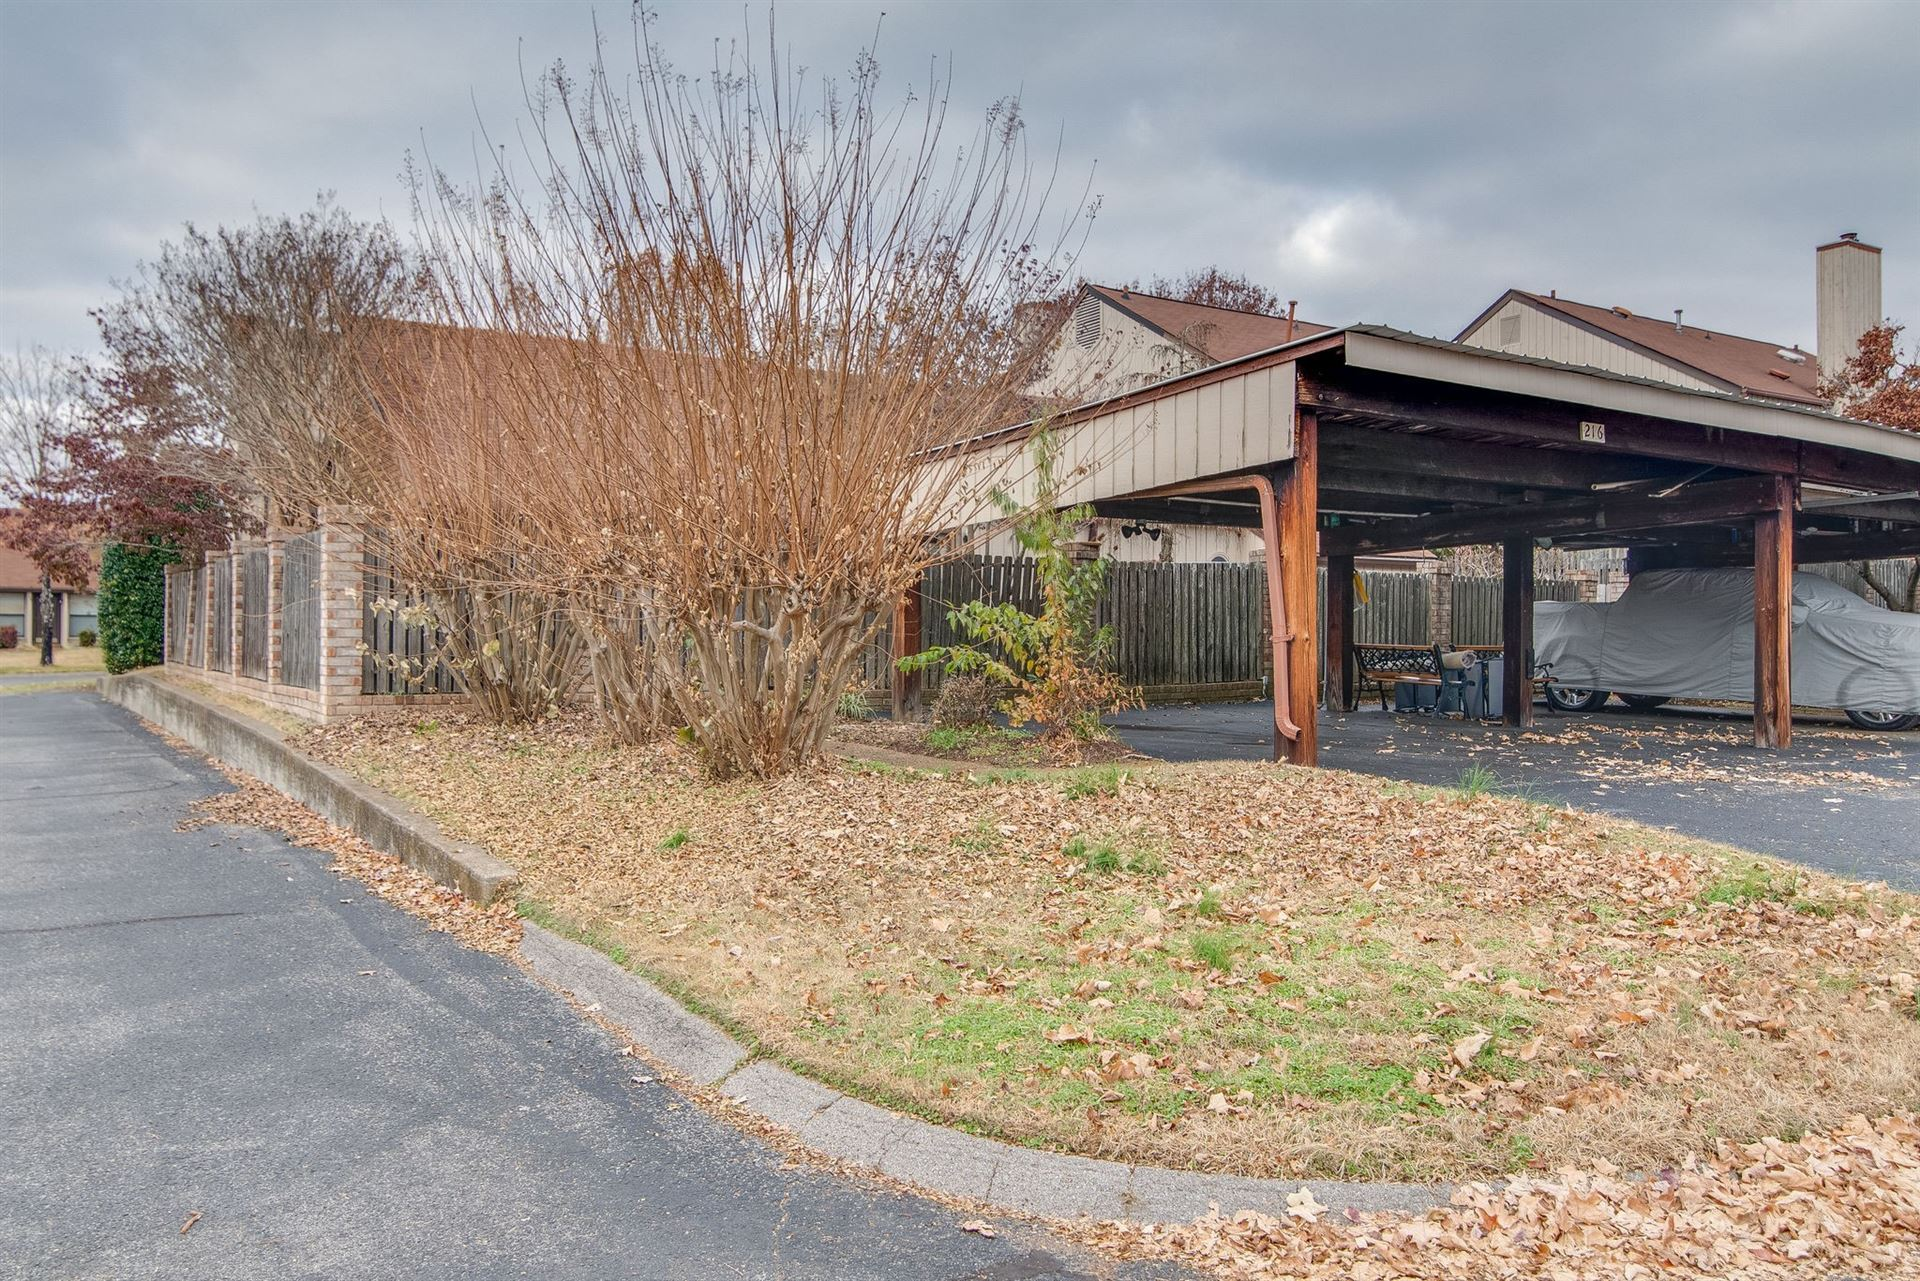 Photo of 216 Harpers Mill Rd #216, Hermitage, TN 37076 (MLS # 2120375)